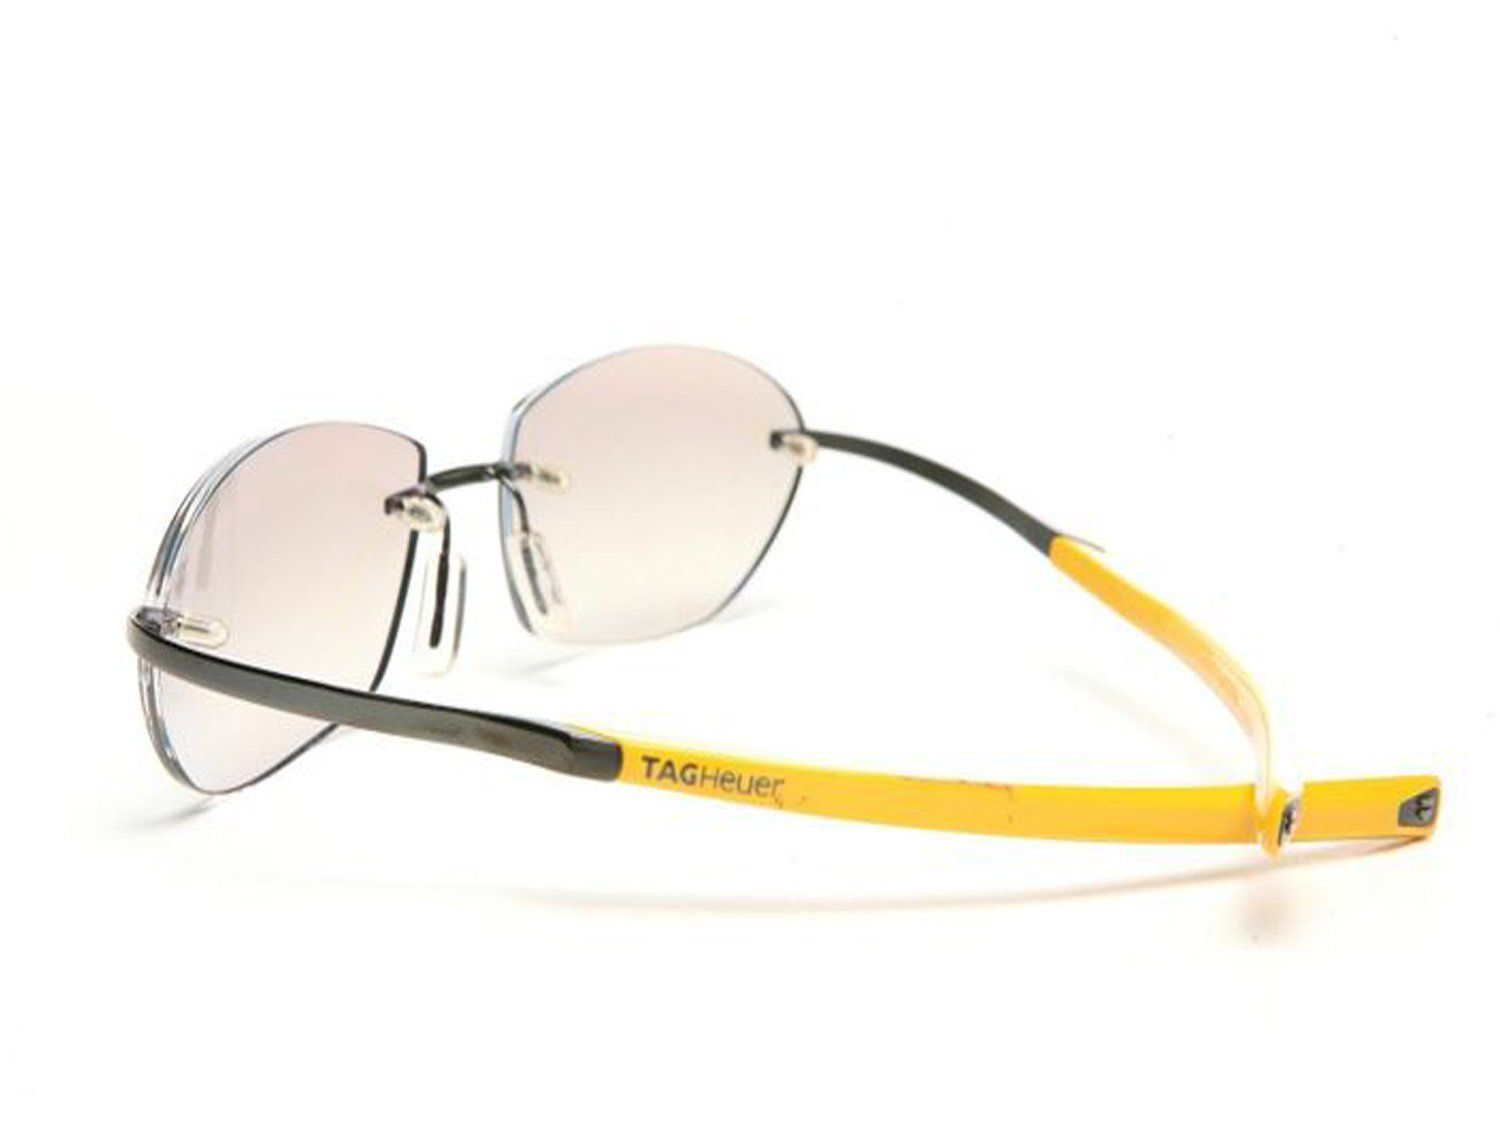 Tag Heuer Eyeglasses ELEMENT Limited Edition 0303 (gunmetal yellow / light tinted UV gradient lens, one size)